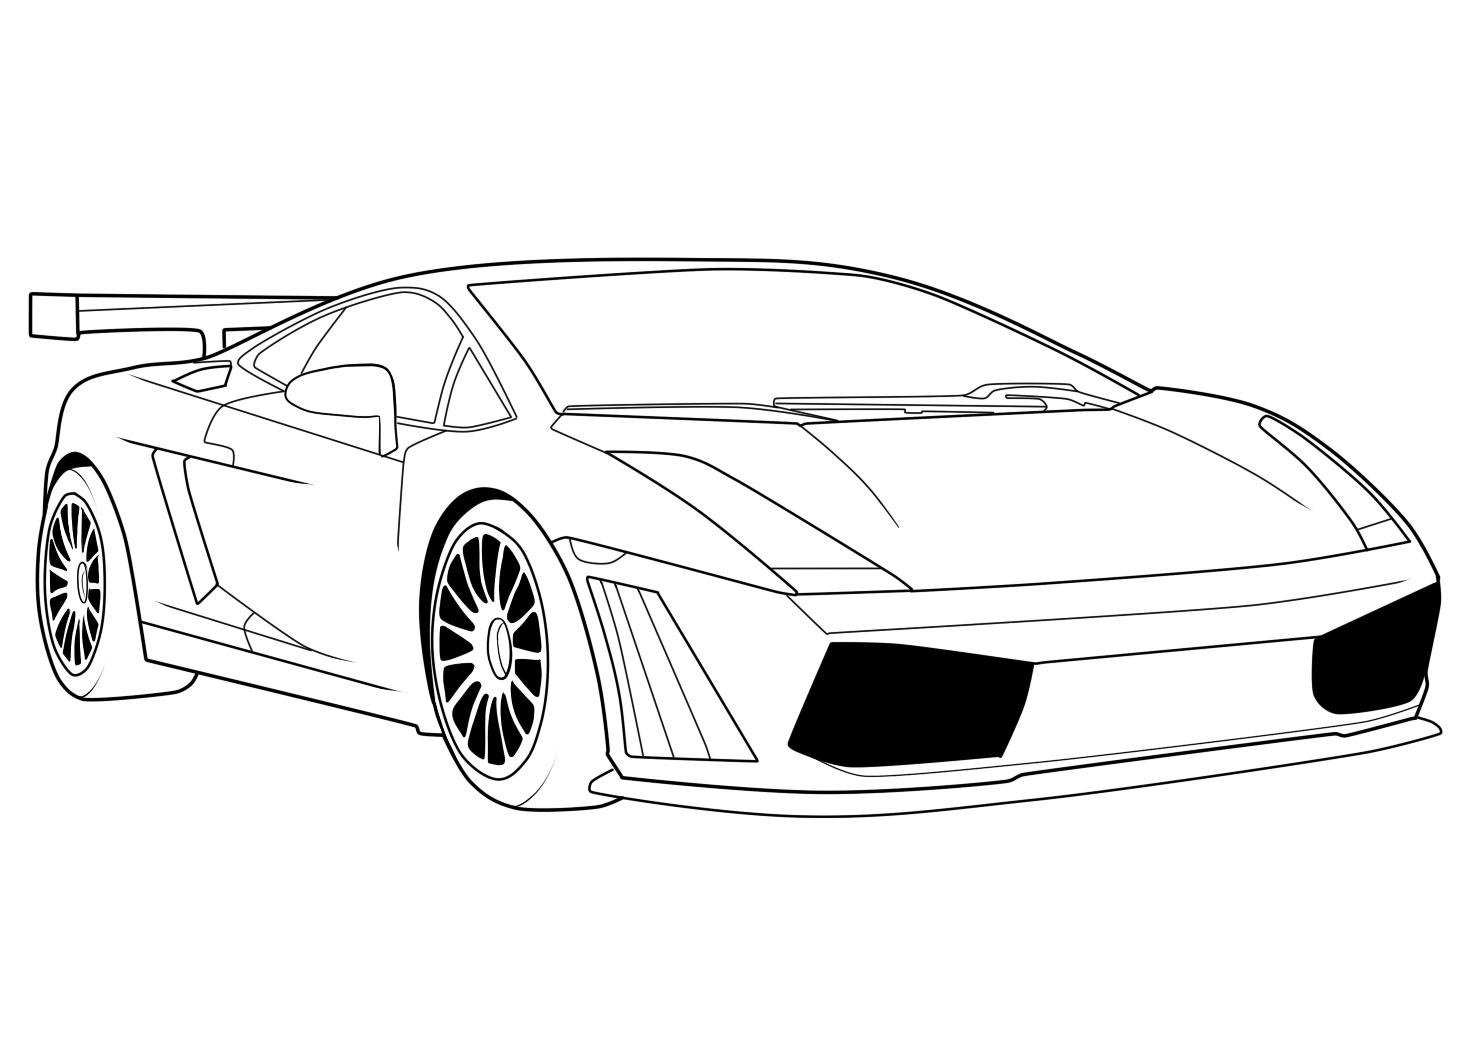 Coloring Pages To Print Of Cars : Free printable lamborghini coloring pages for kids